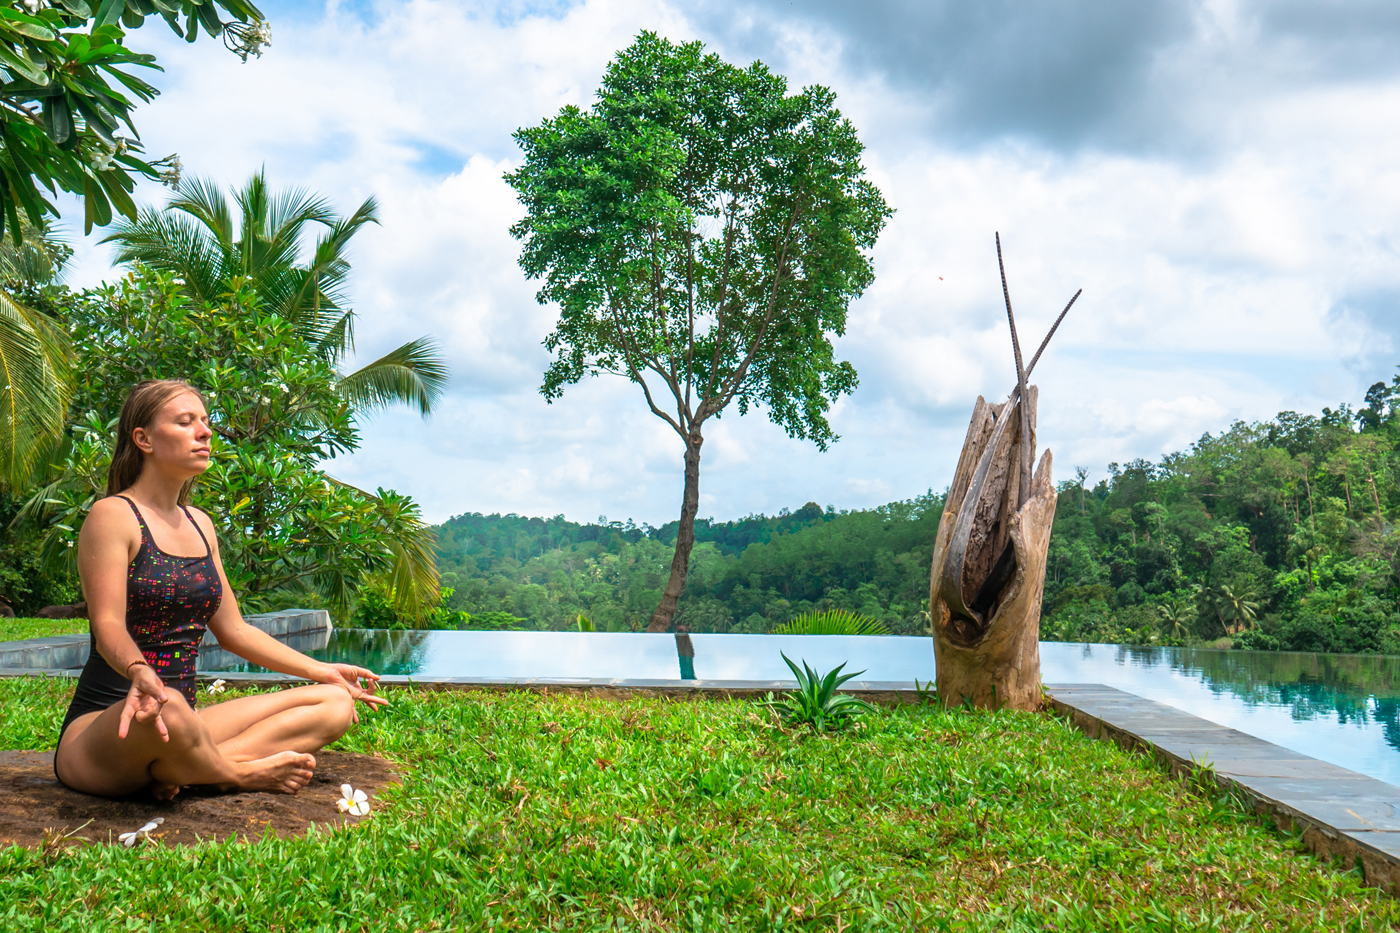 Luxury Ayurveda wellness project launches in Kolkata by end December